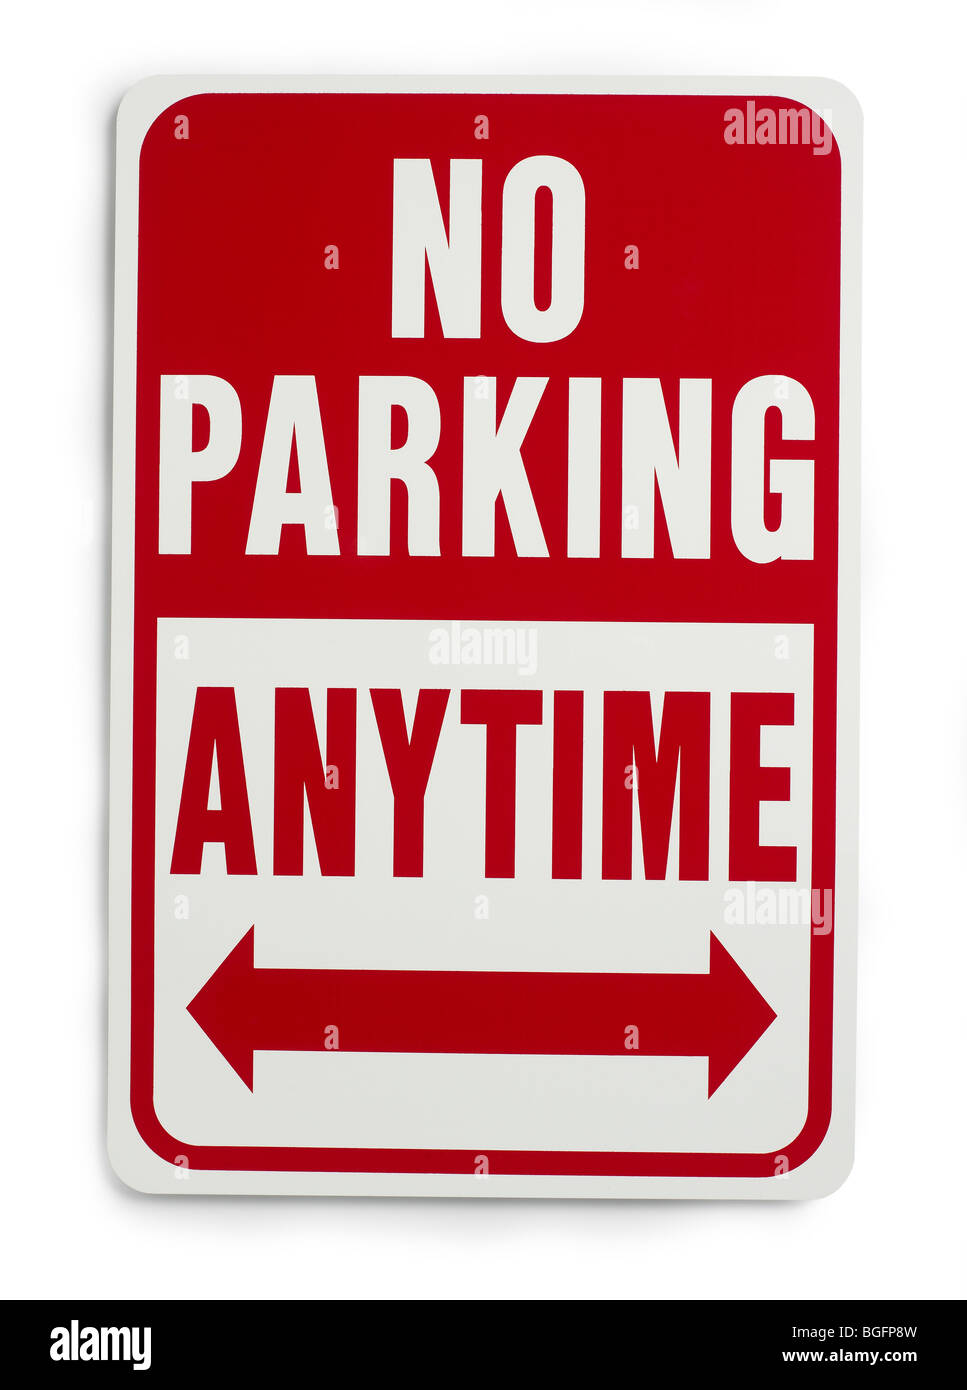 No Parking Anytime Sign - Stock Image